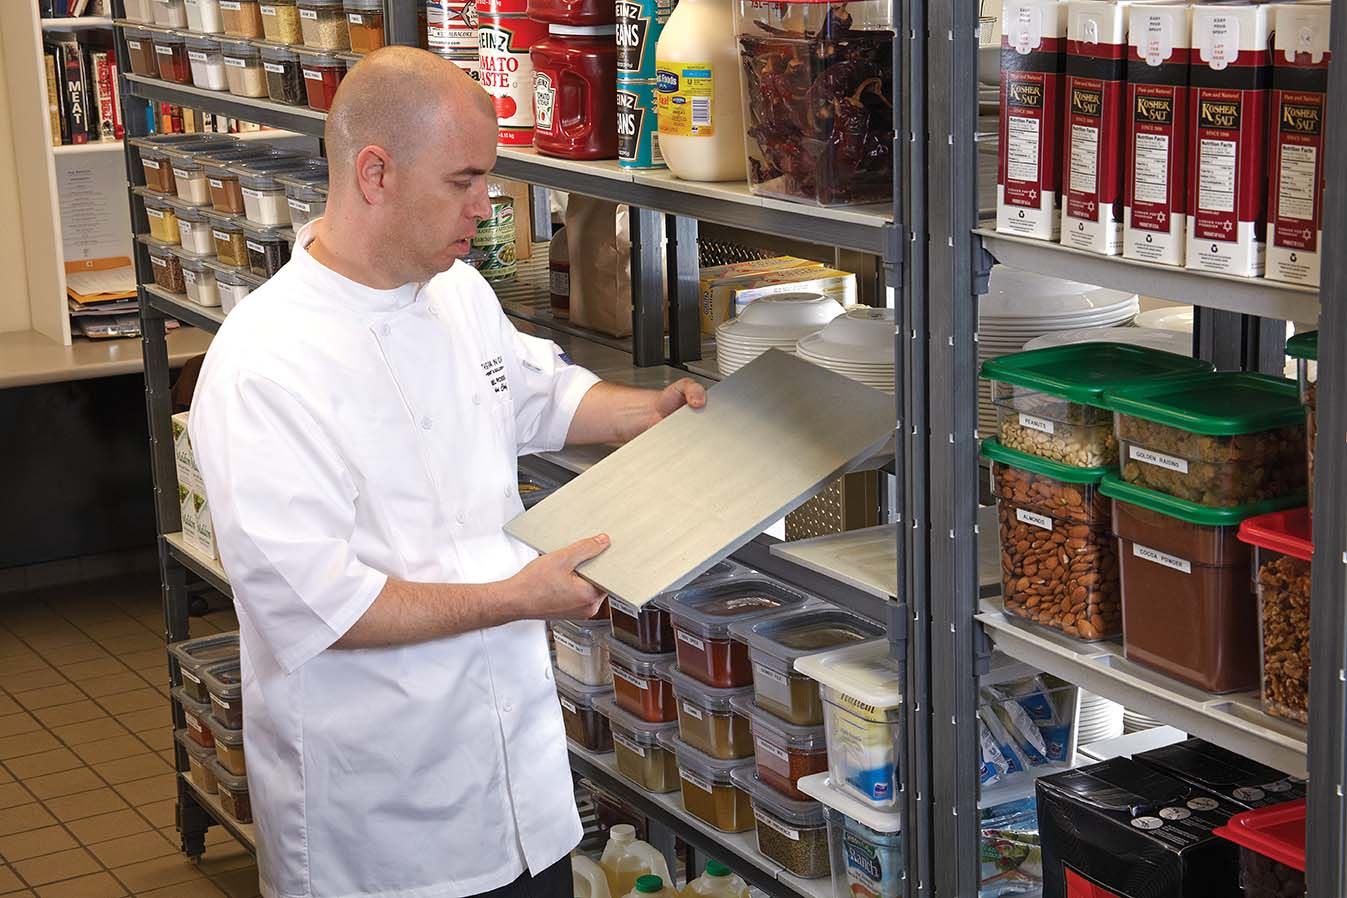 [FREE GUIDE] Keep the Health Inspector happy with our 7 HACCP steps to food safety